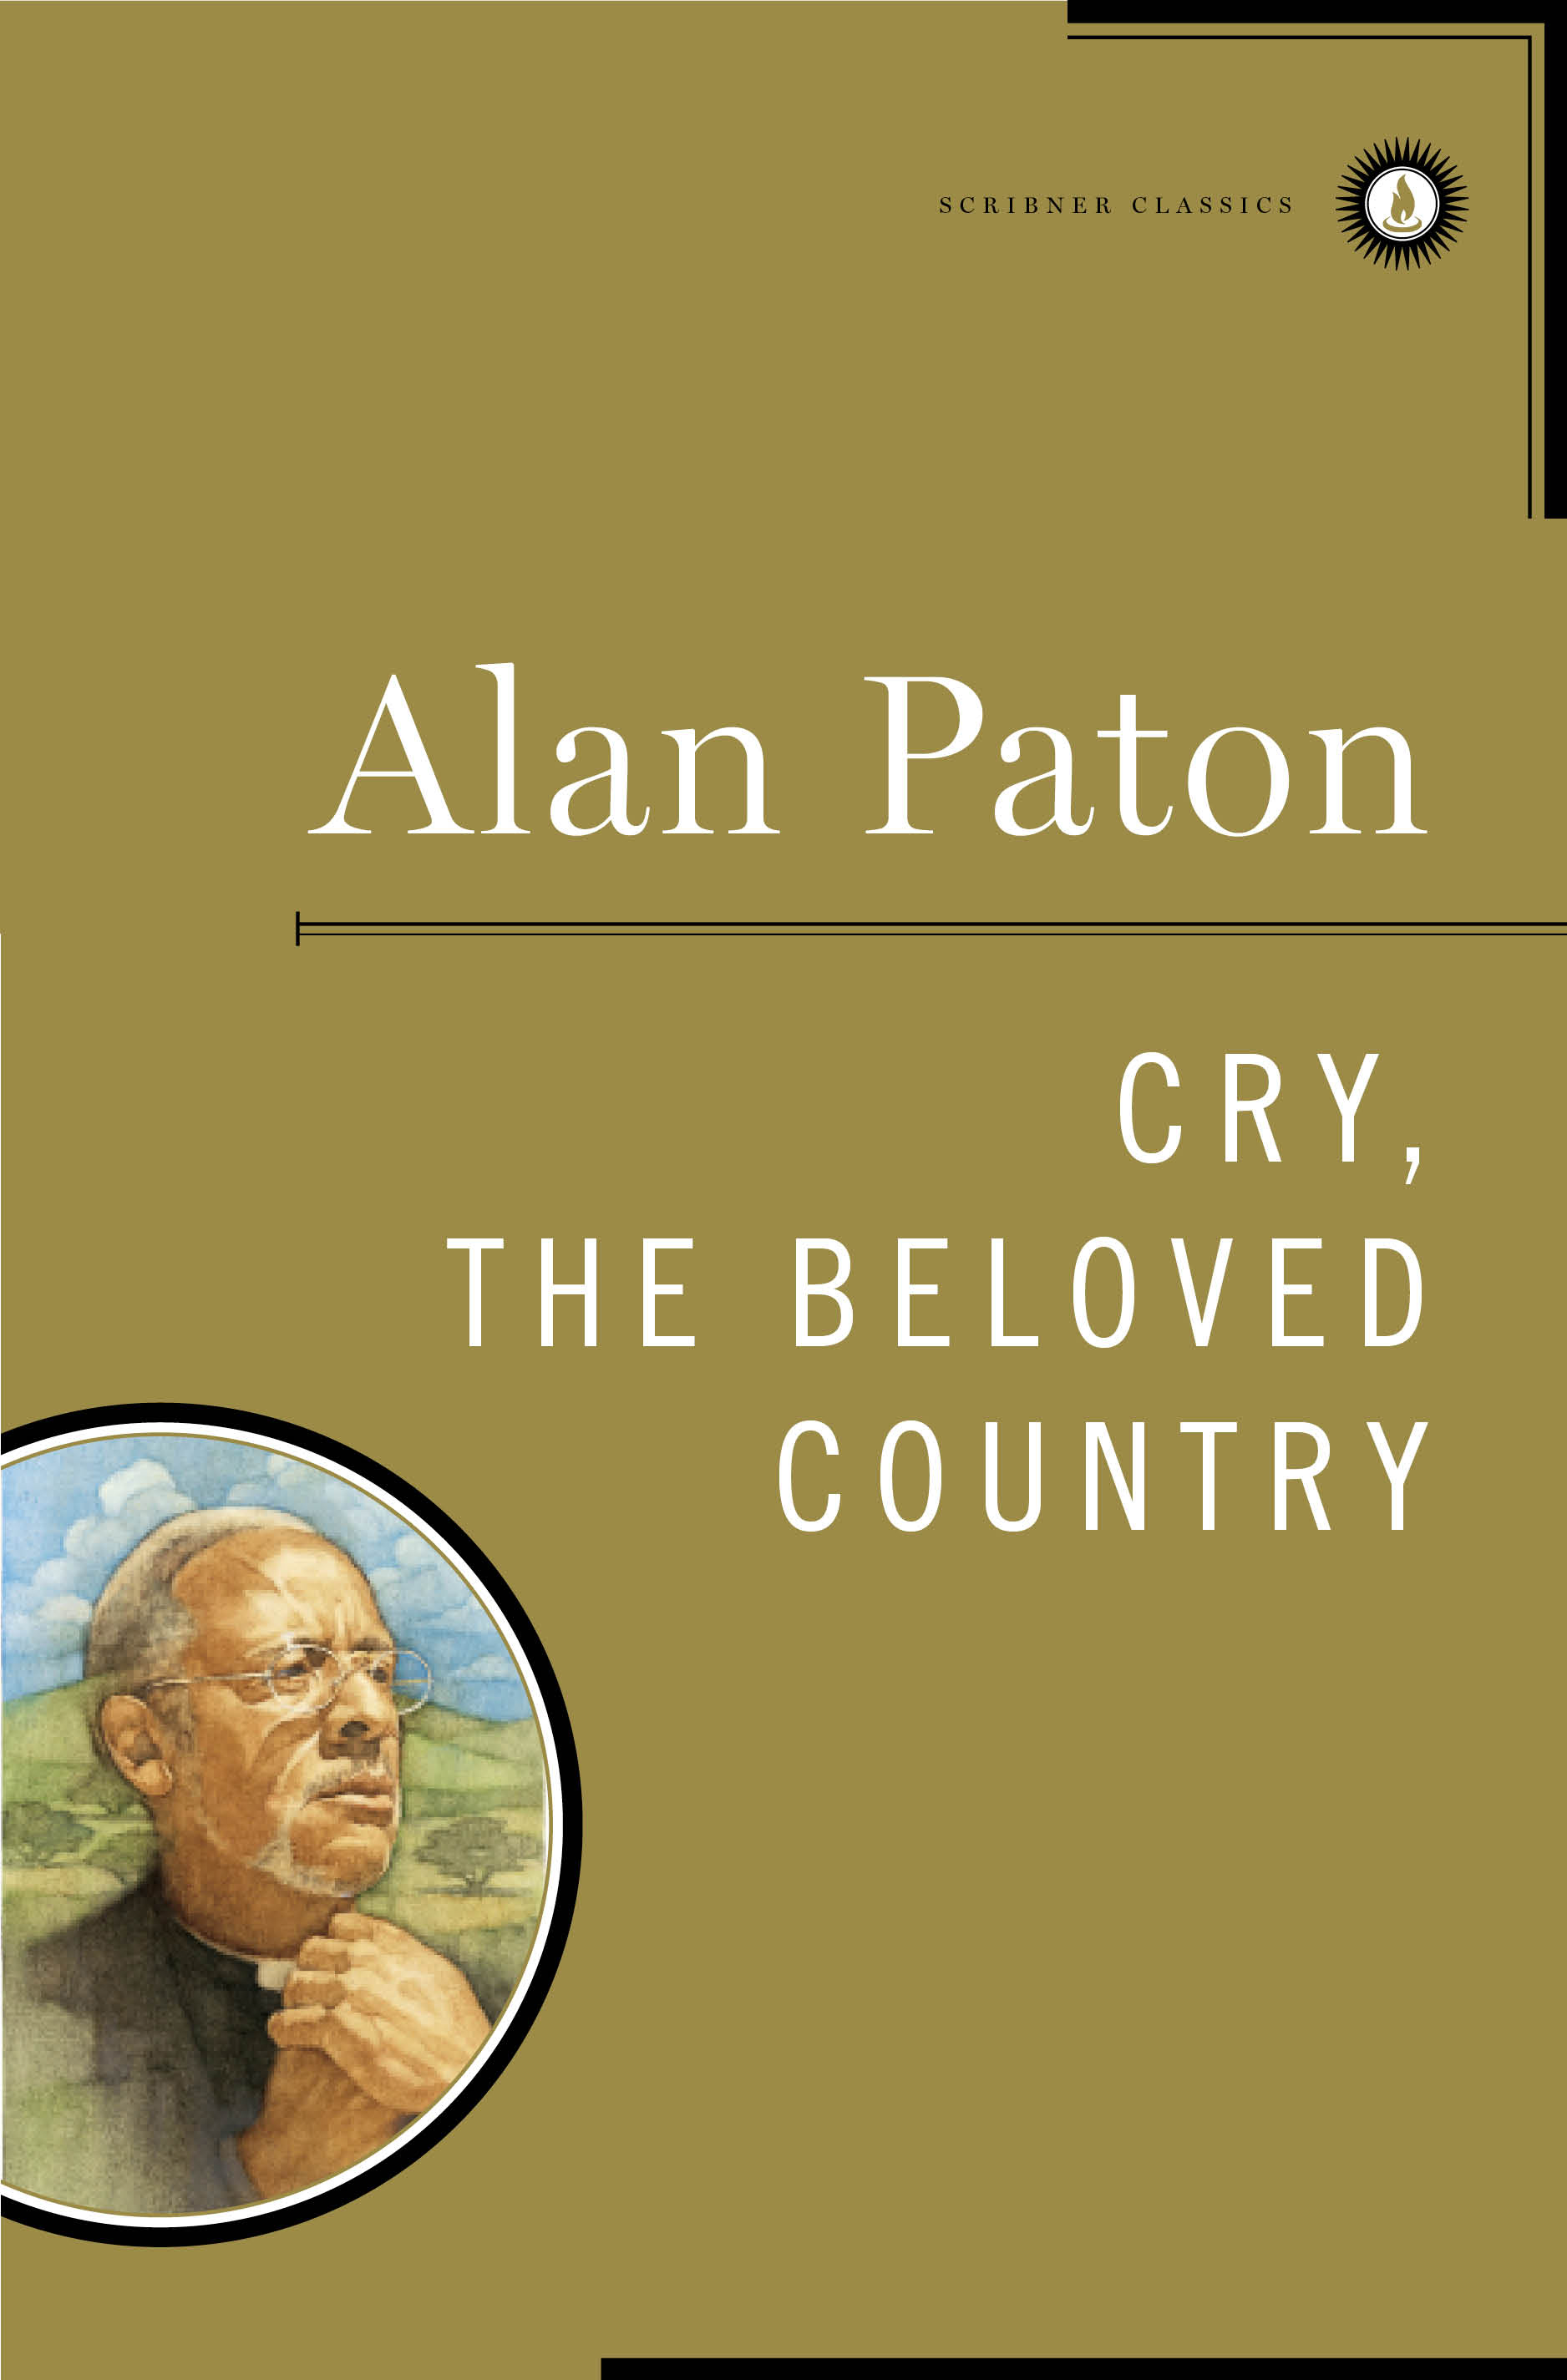 an analysis of racial struggles during the apartheid in cry the beloved country by alan paton Literatures in european and european-derived languages:  cry, the beloved country (1948), by alan paton,  of a johannesburg suburb during the apartheid.